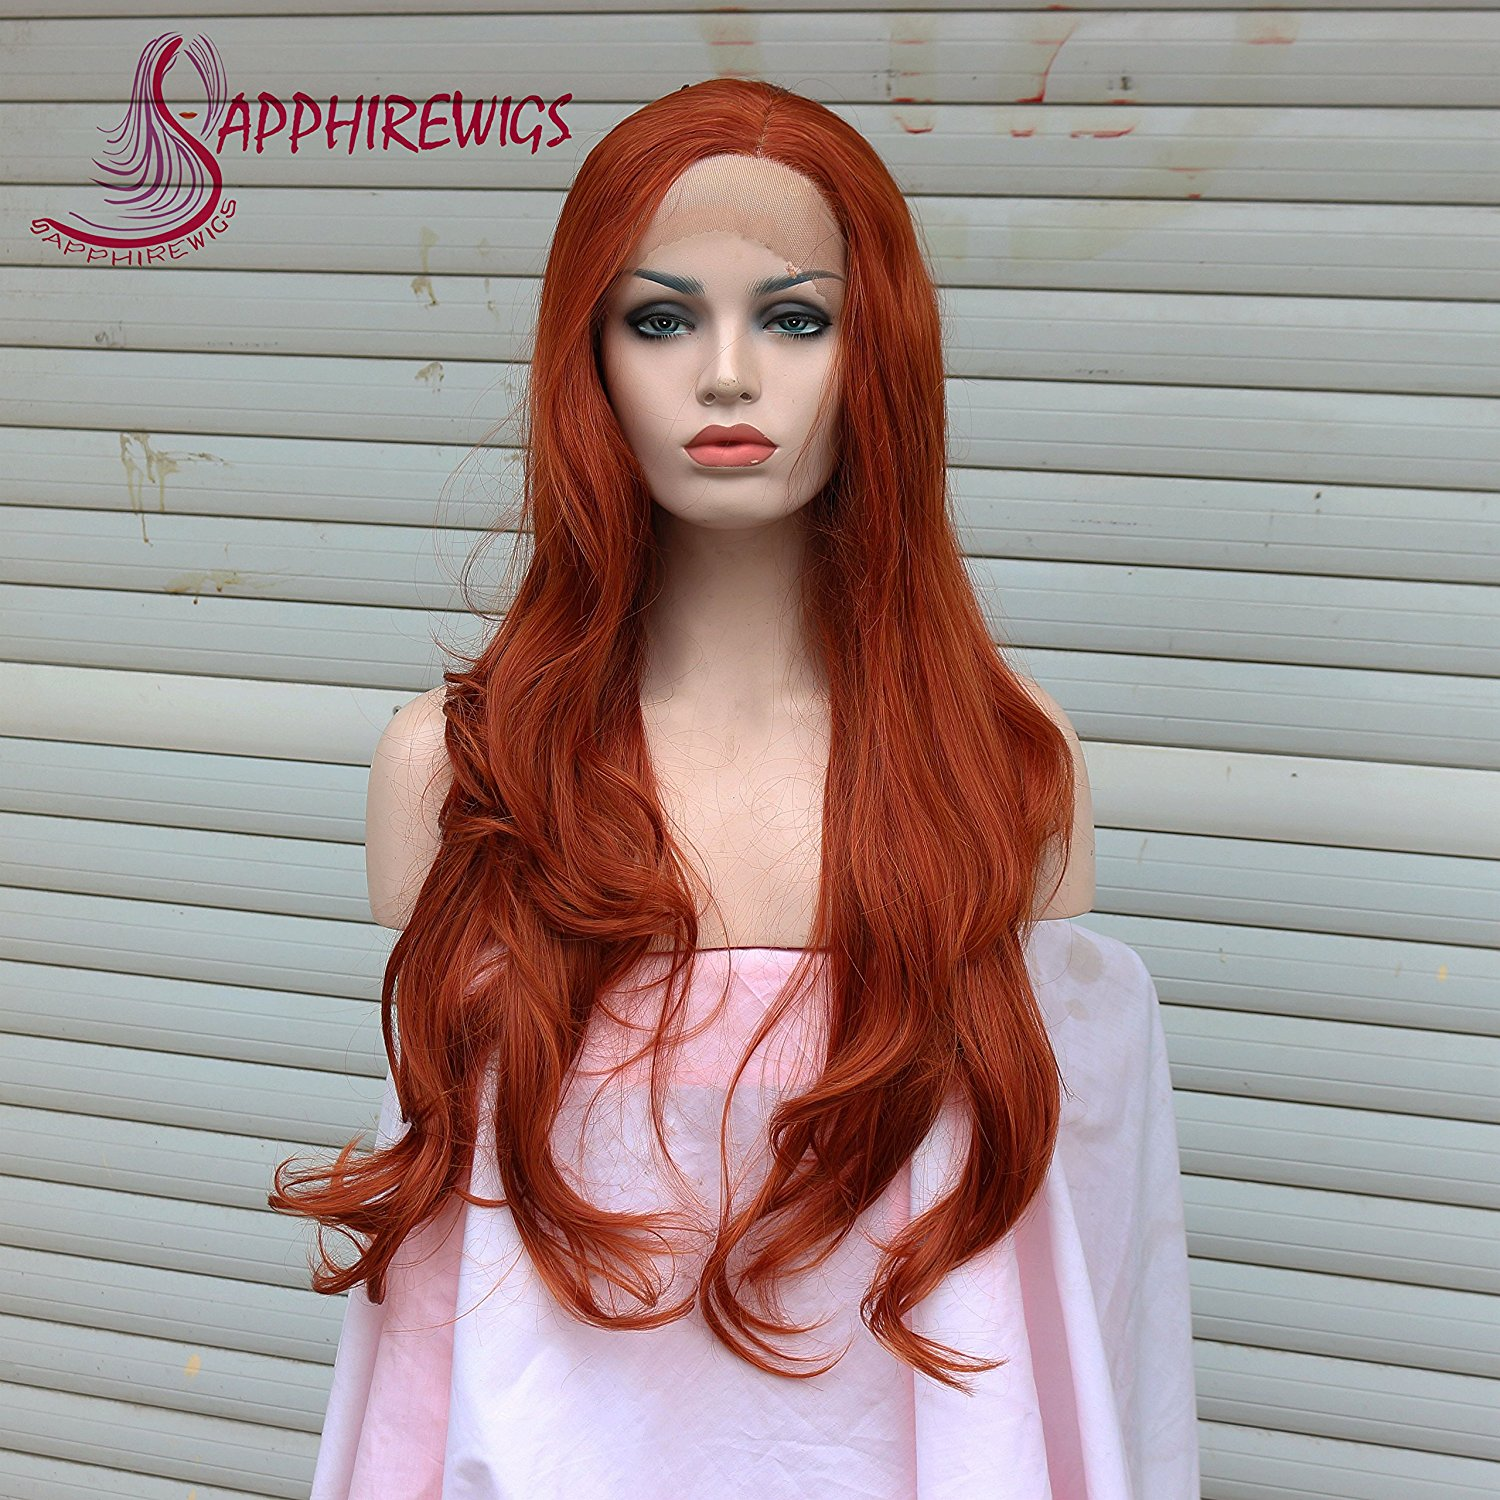 Sapphirewigs Orange-red Natural Wavy Party Wig Cosplay Wig Glueless Synthetic Lace Front Wig Heat Resistant Hand Tied Lace Front Wig For Women